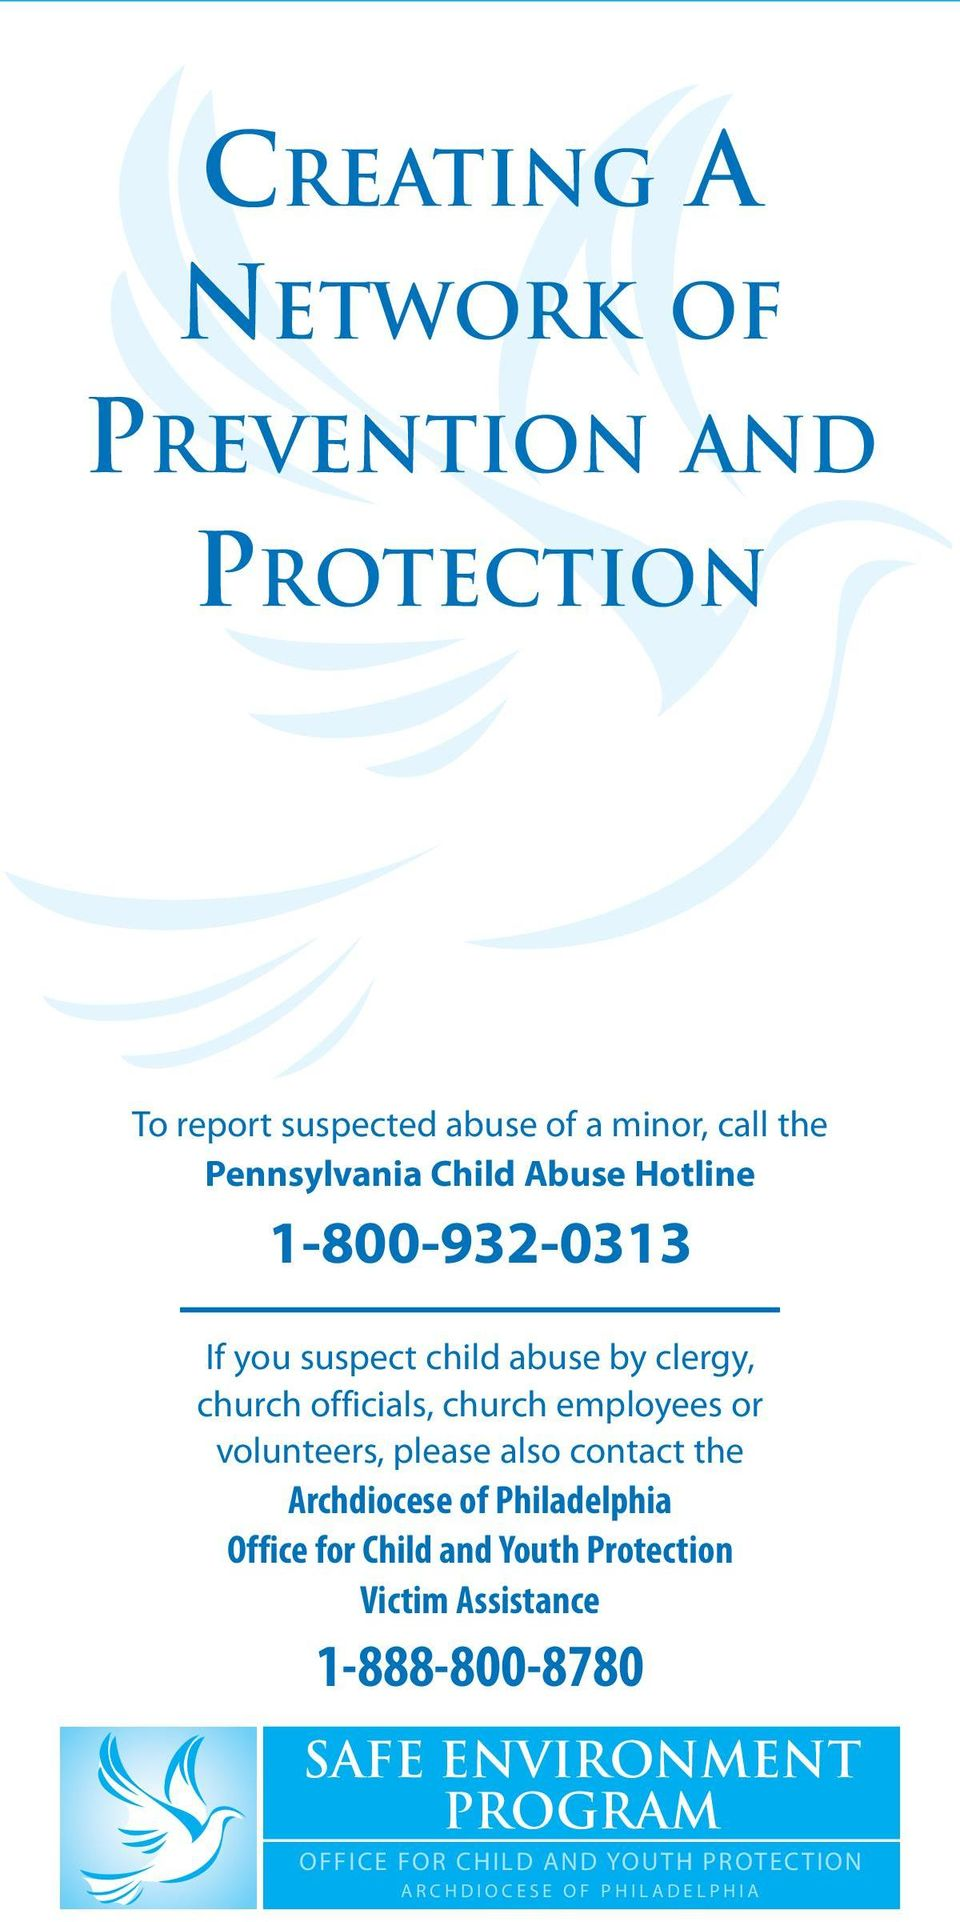 volunteers, please also contact the Archdiocese of Philadelphia Office for Child and Youth Protection Victim